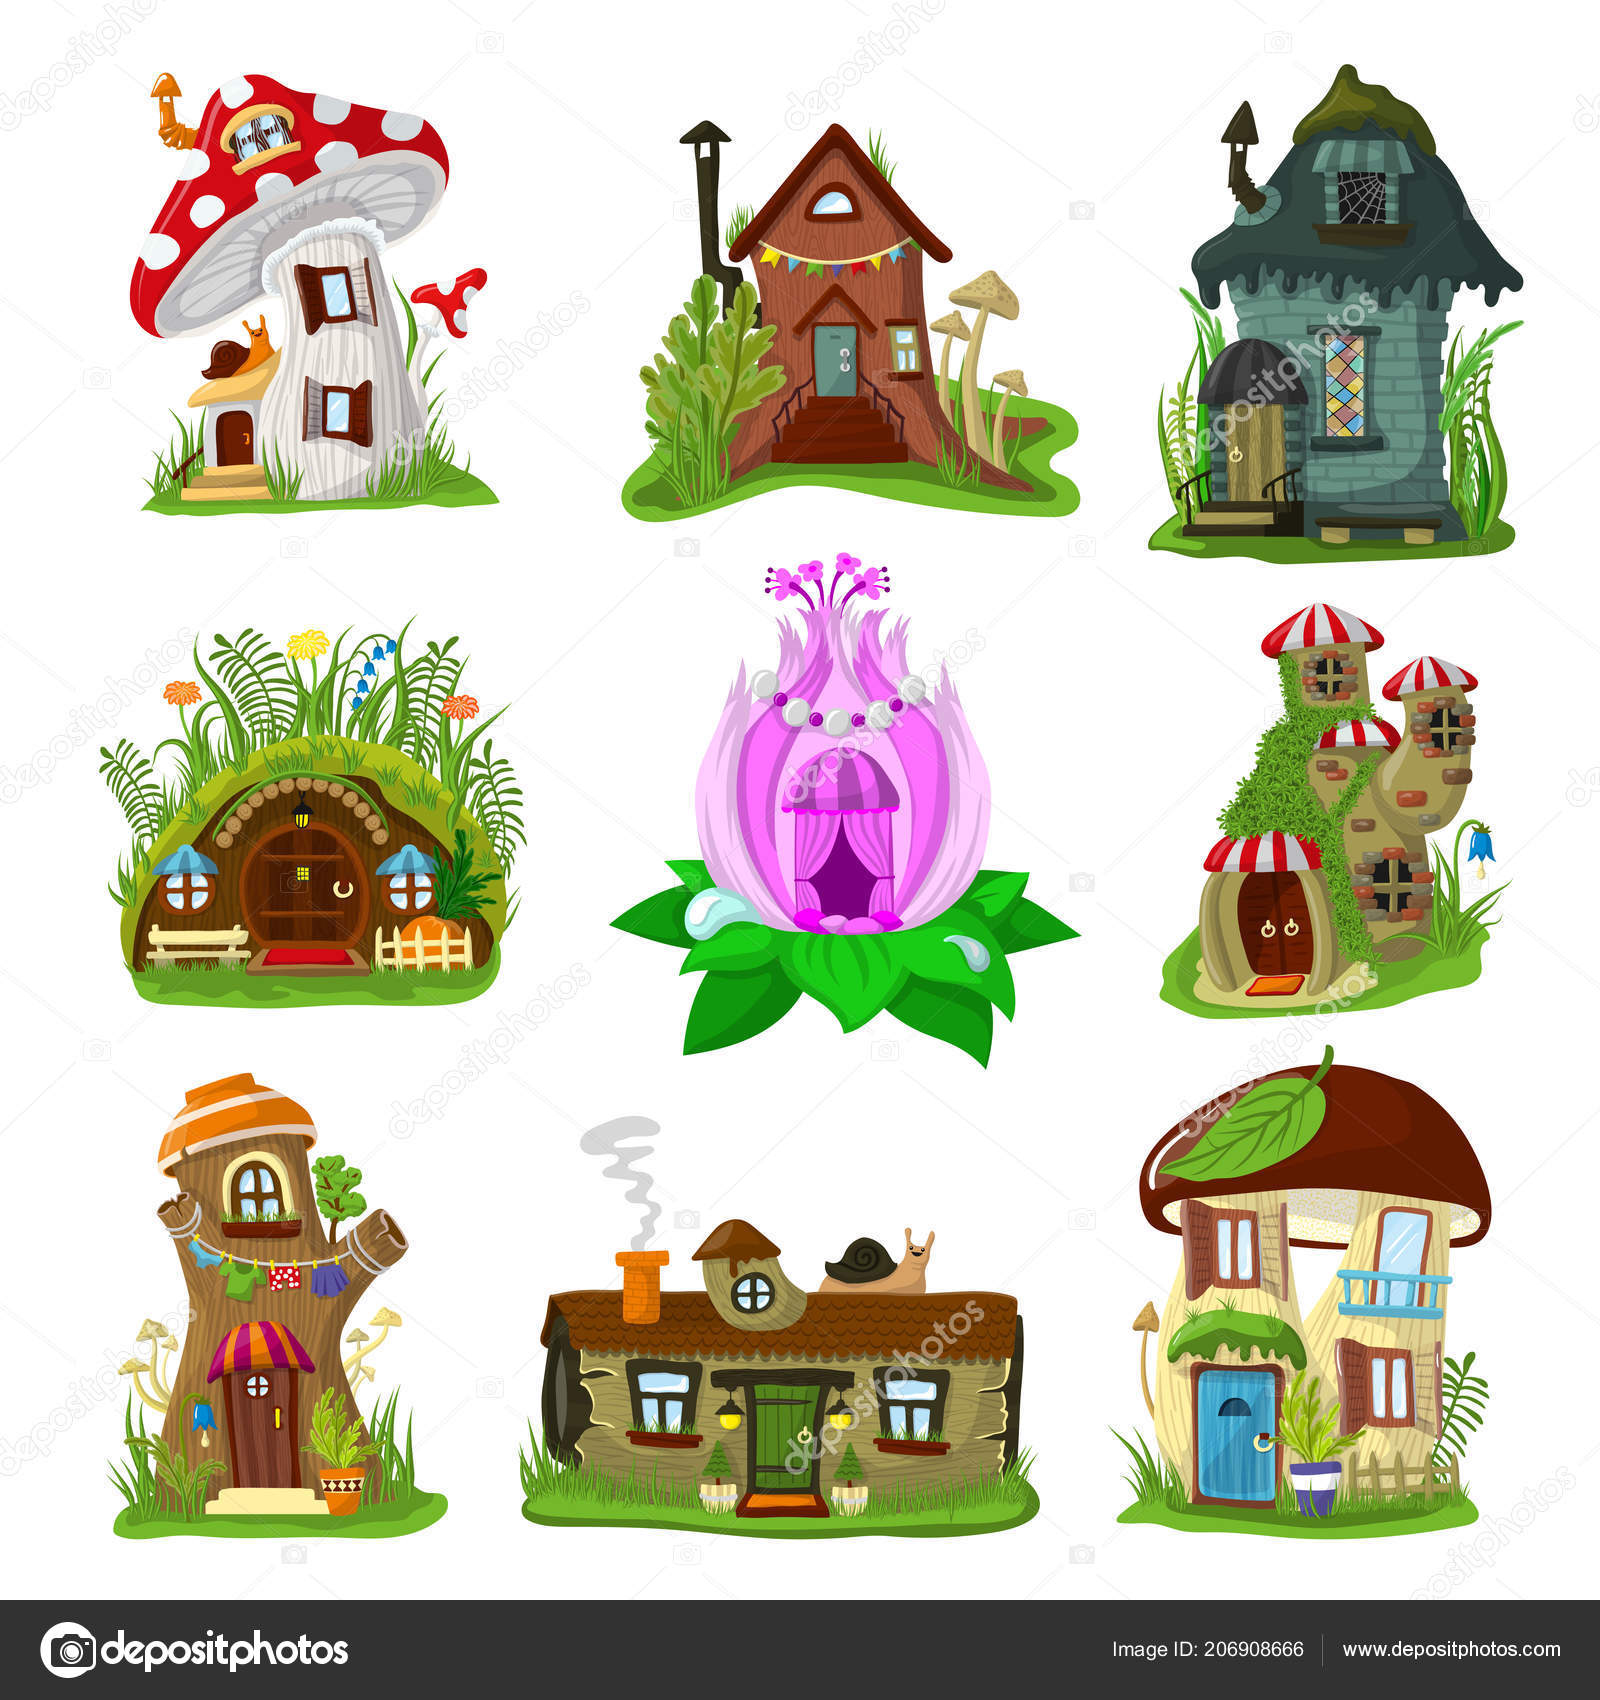 Áˆ Kid Tree House Stock Pictures Royalty Free Kids Treehouse Images Download On Depositphotos Cartoon tree animation nature christmas tree plant design environment christmas village. https depositphotos com 206908666 stock illustration fantasy house vector cartoon fairy html